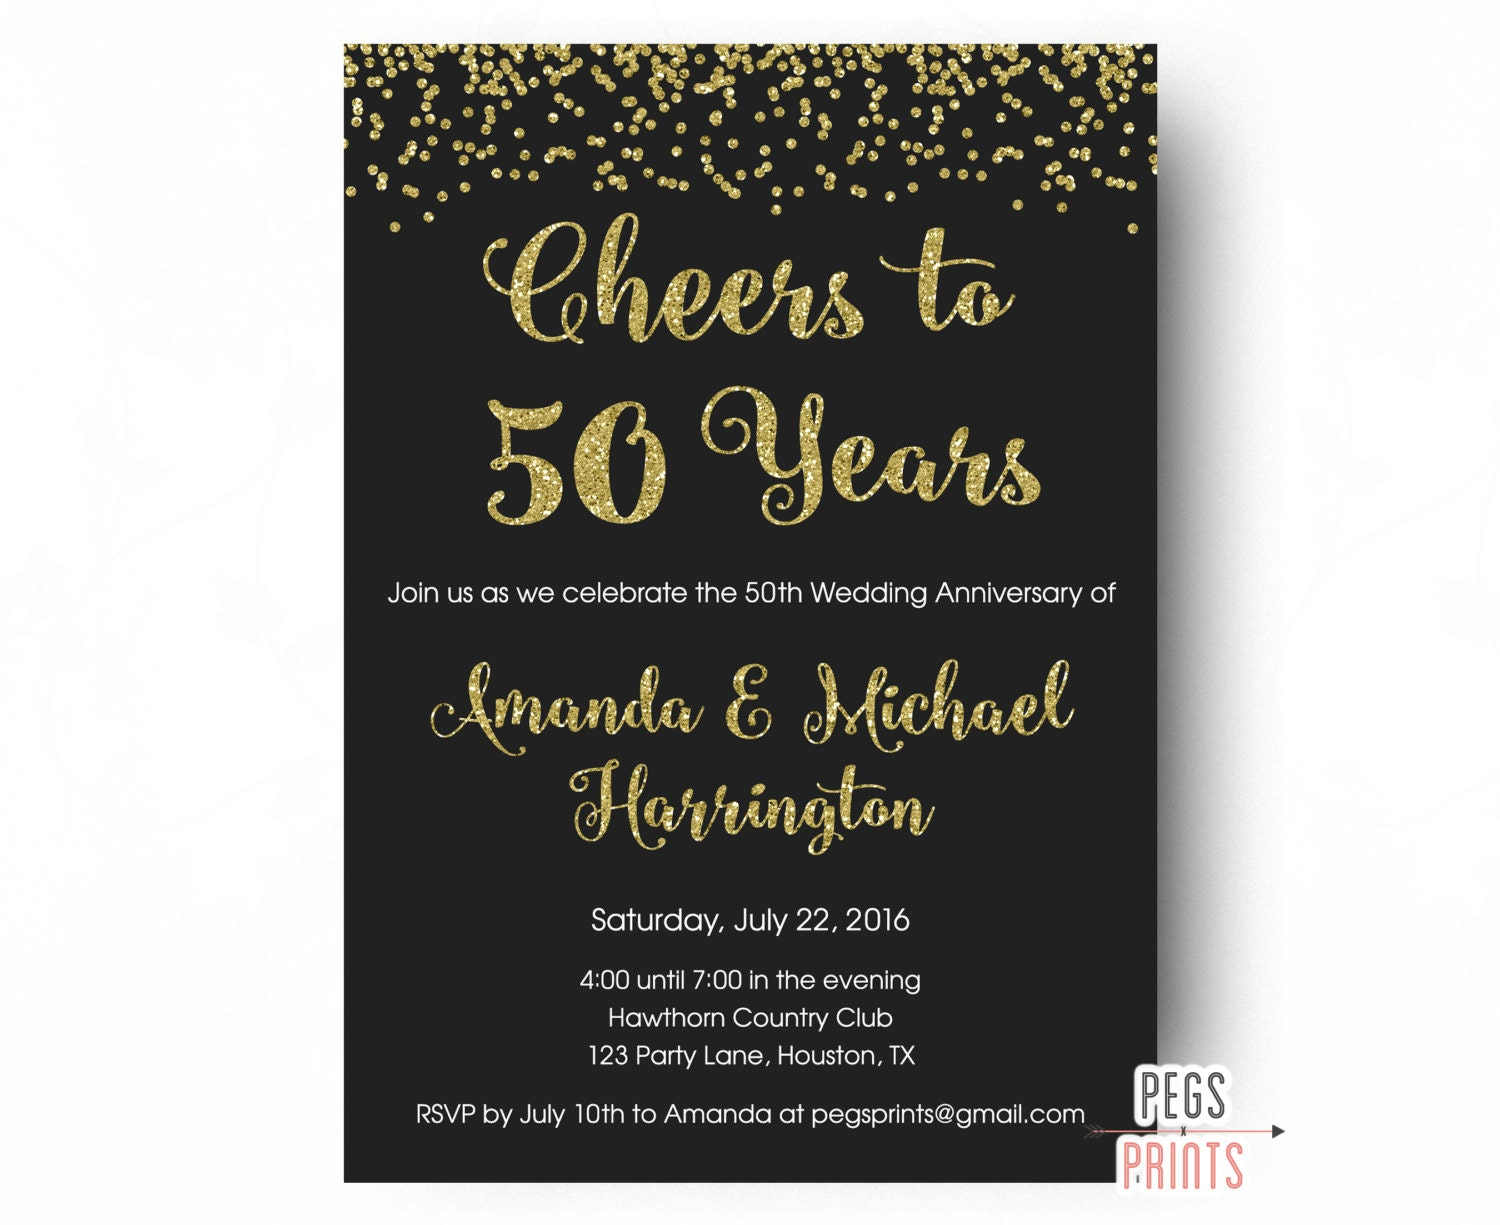 Fiftieth Wedding Anniversary Invitations: Cheers To 50 Years Invitation 50th Anniversary Invitation